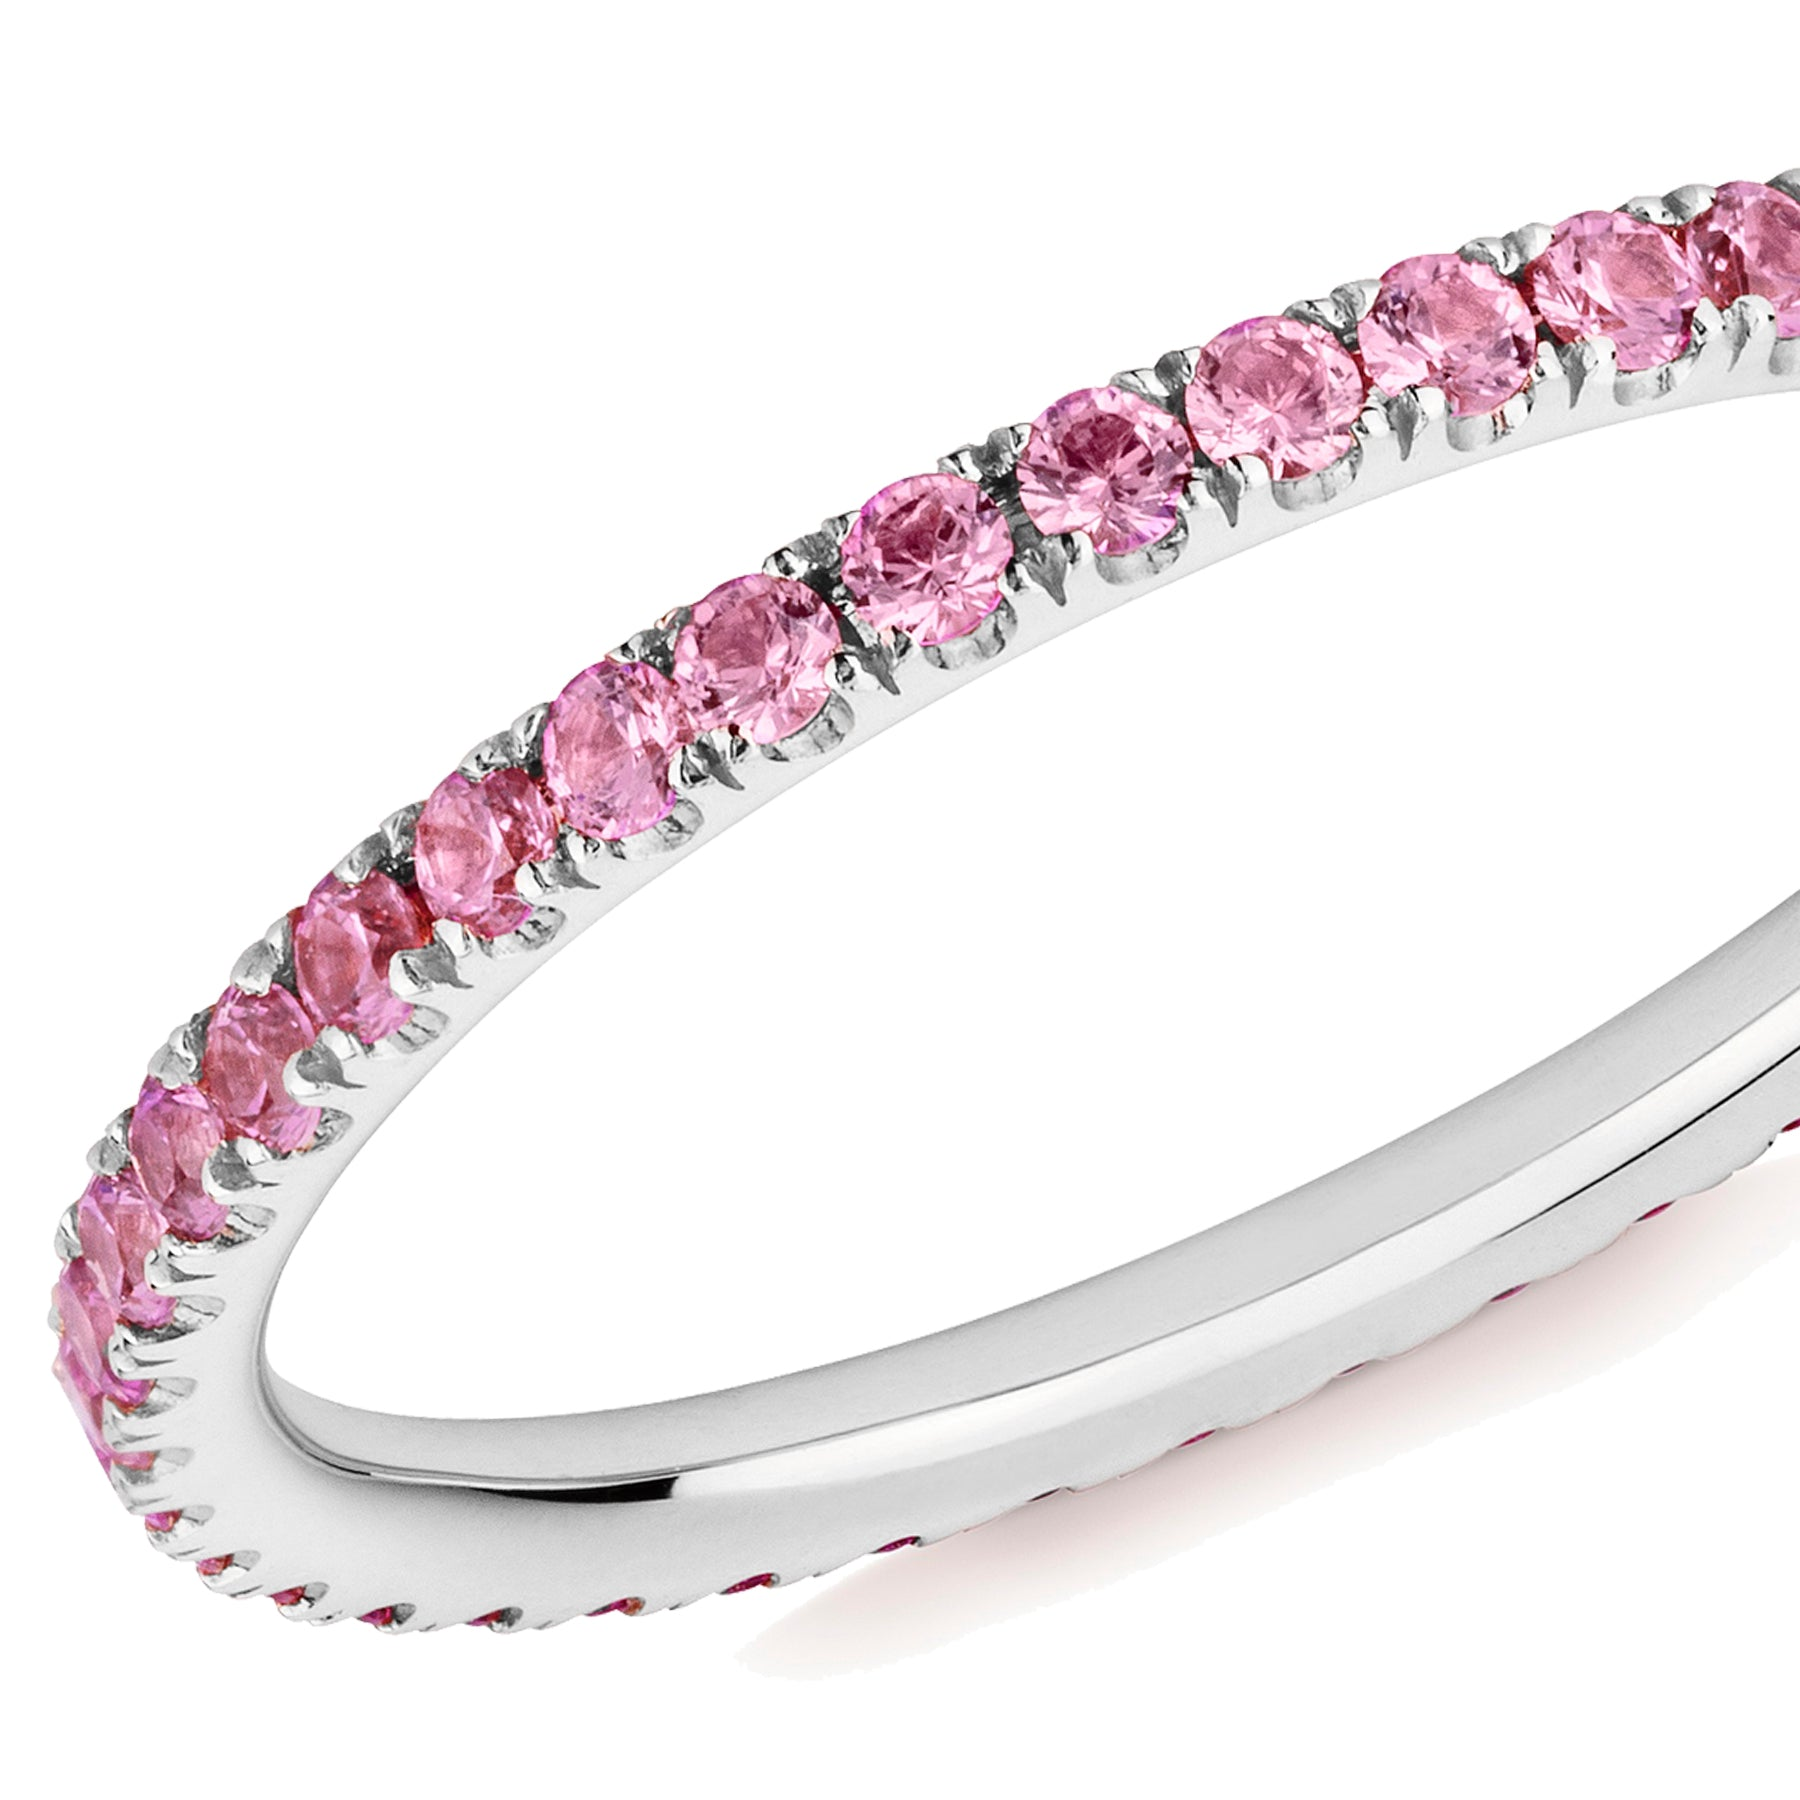 Closeup of a pink sapphire eternity ring in platinum on a white background.